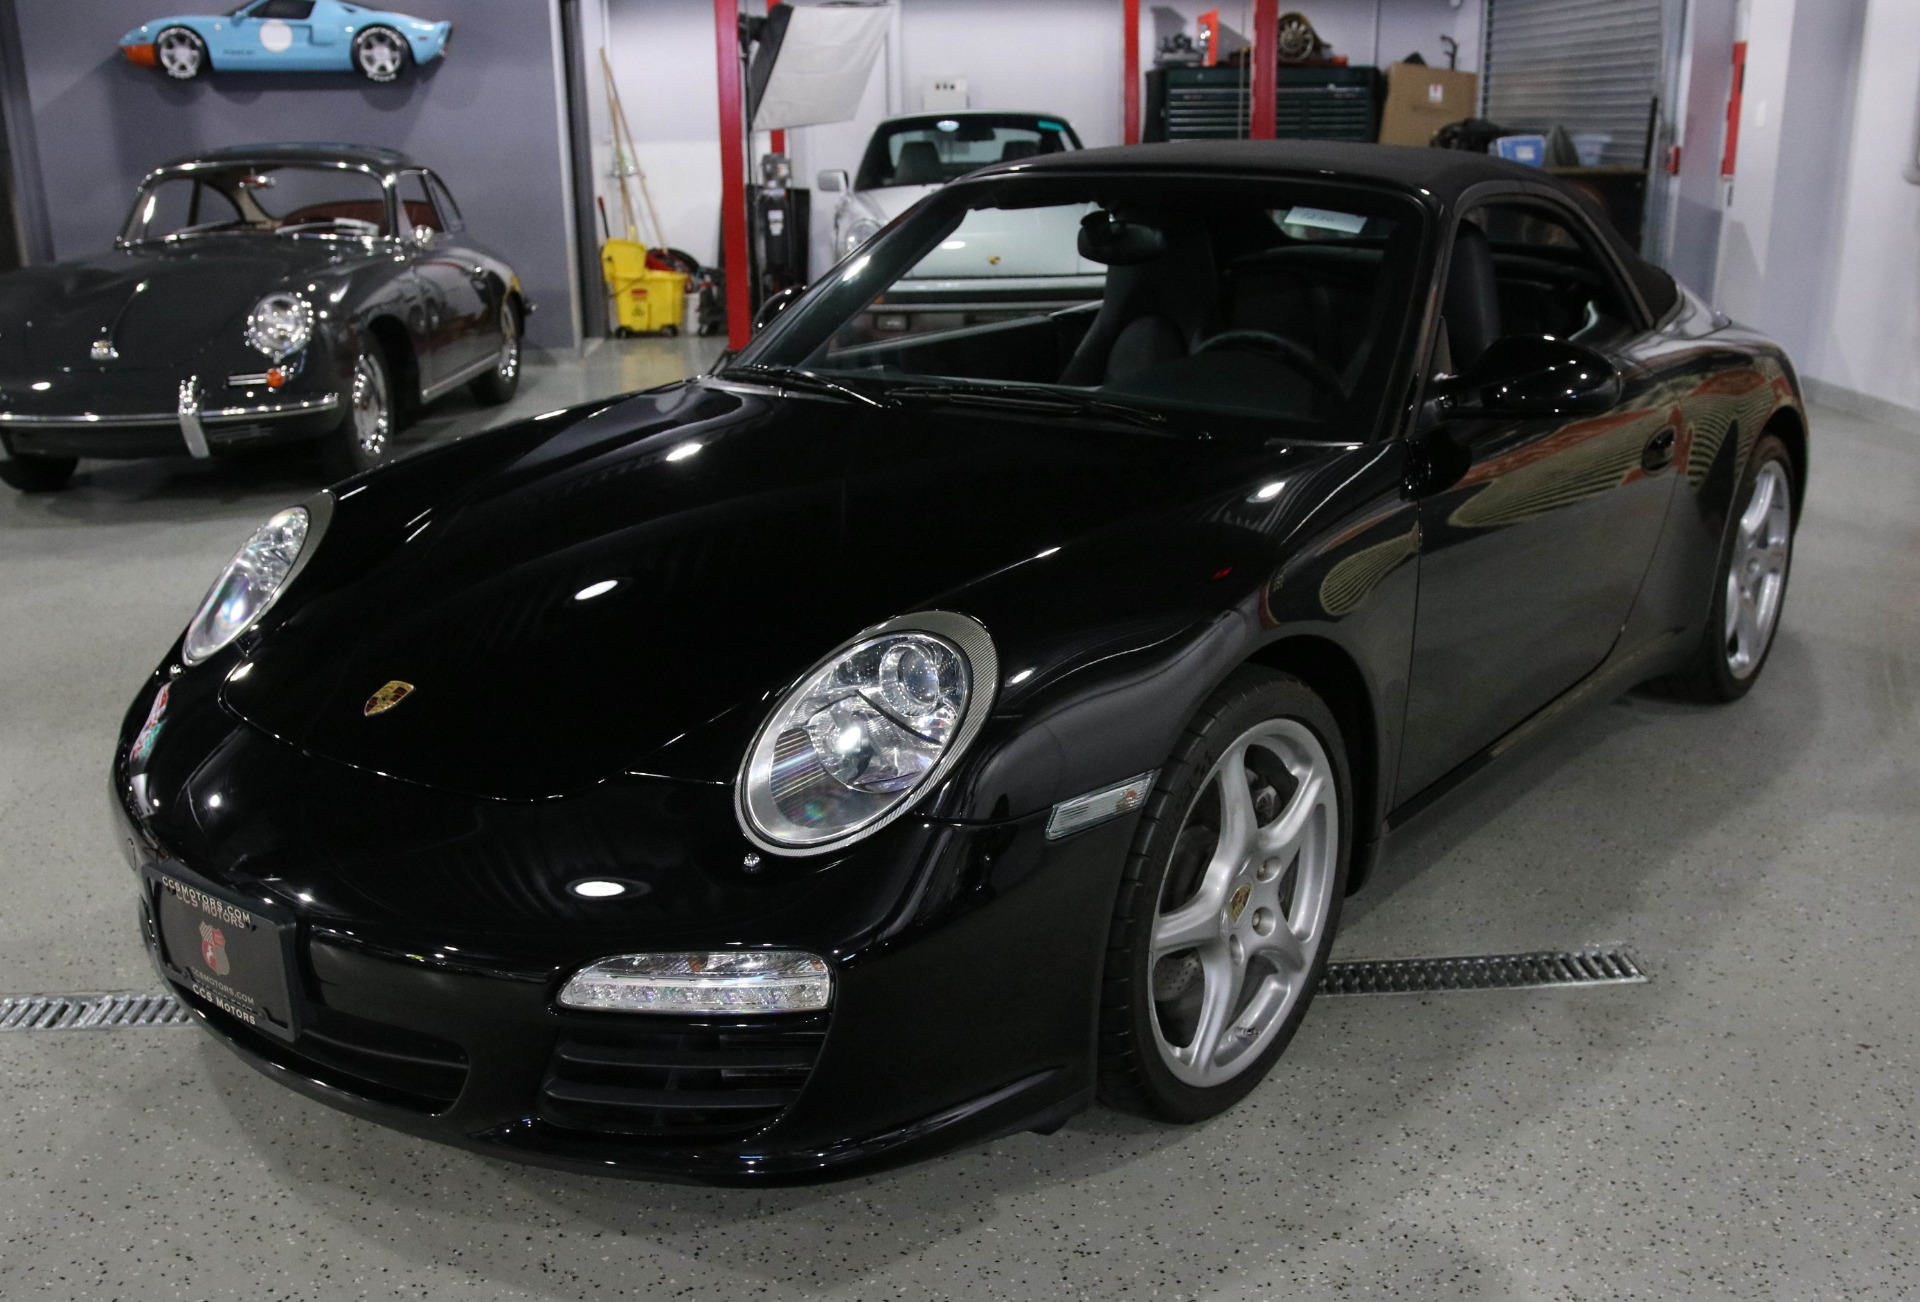 2009 porsche 911 carrera cabriolet stock 1230 for sale. Black Bedroom Furniture Sets. Home Design Ideas